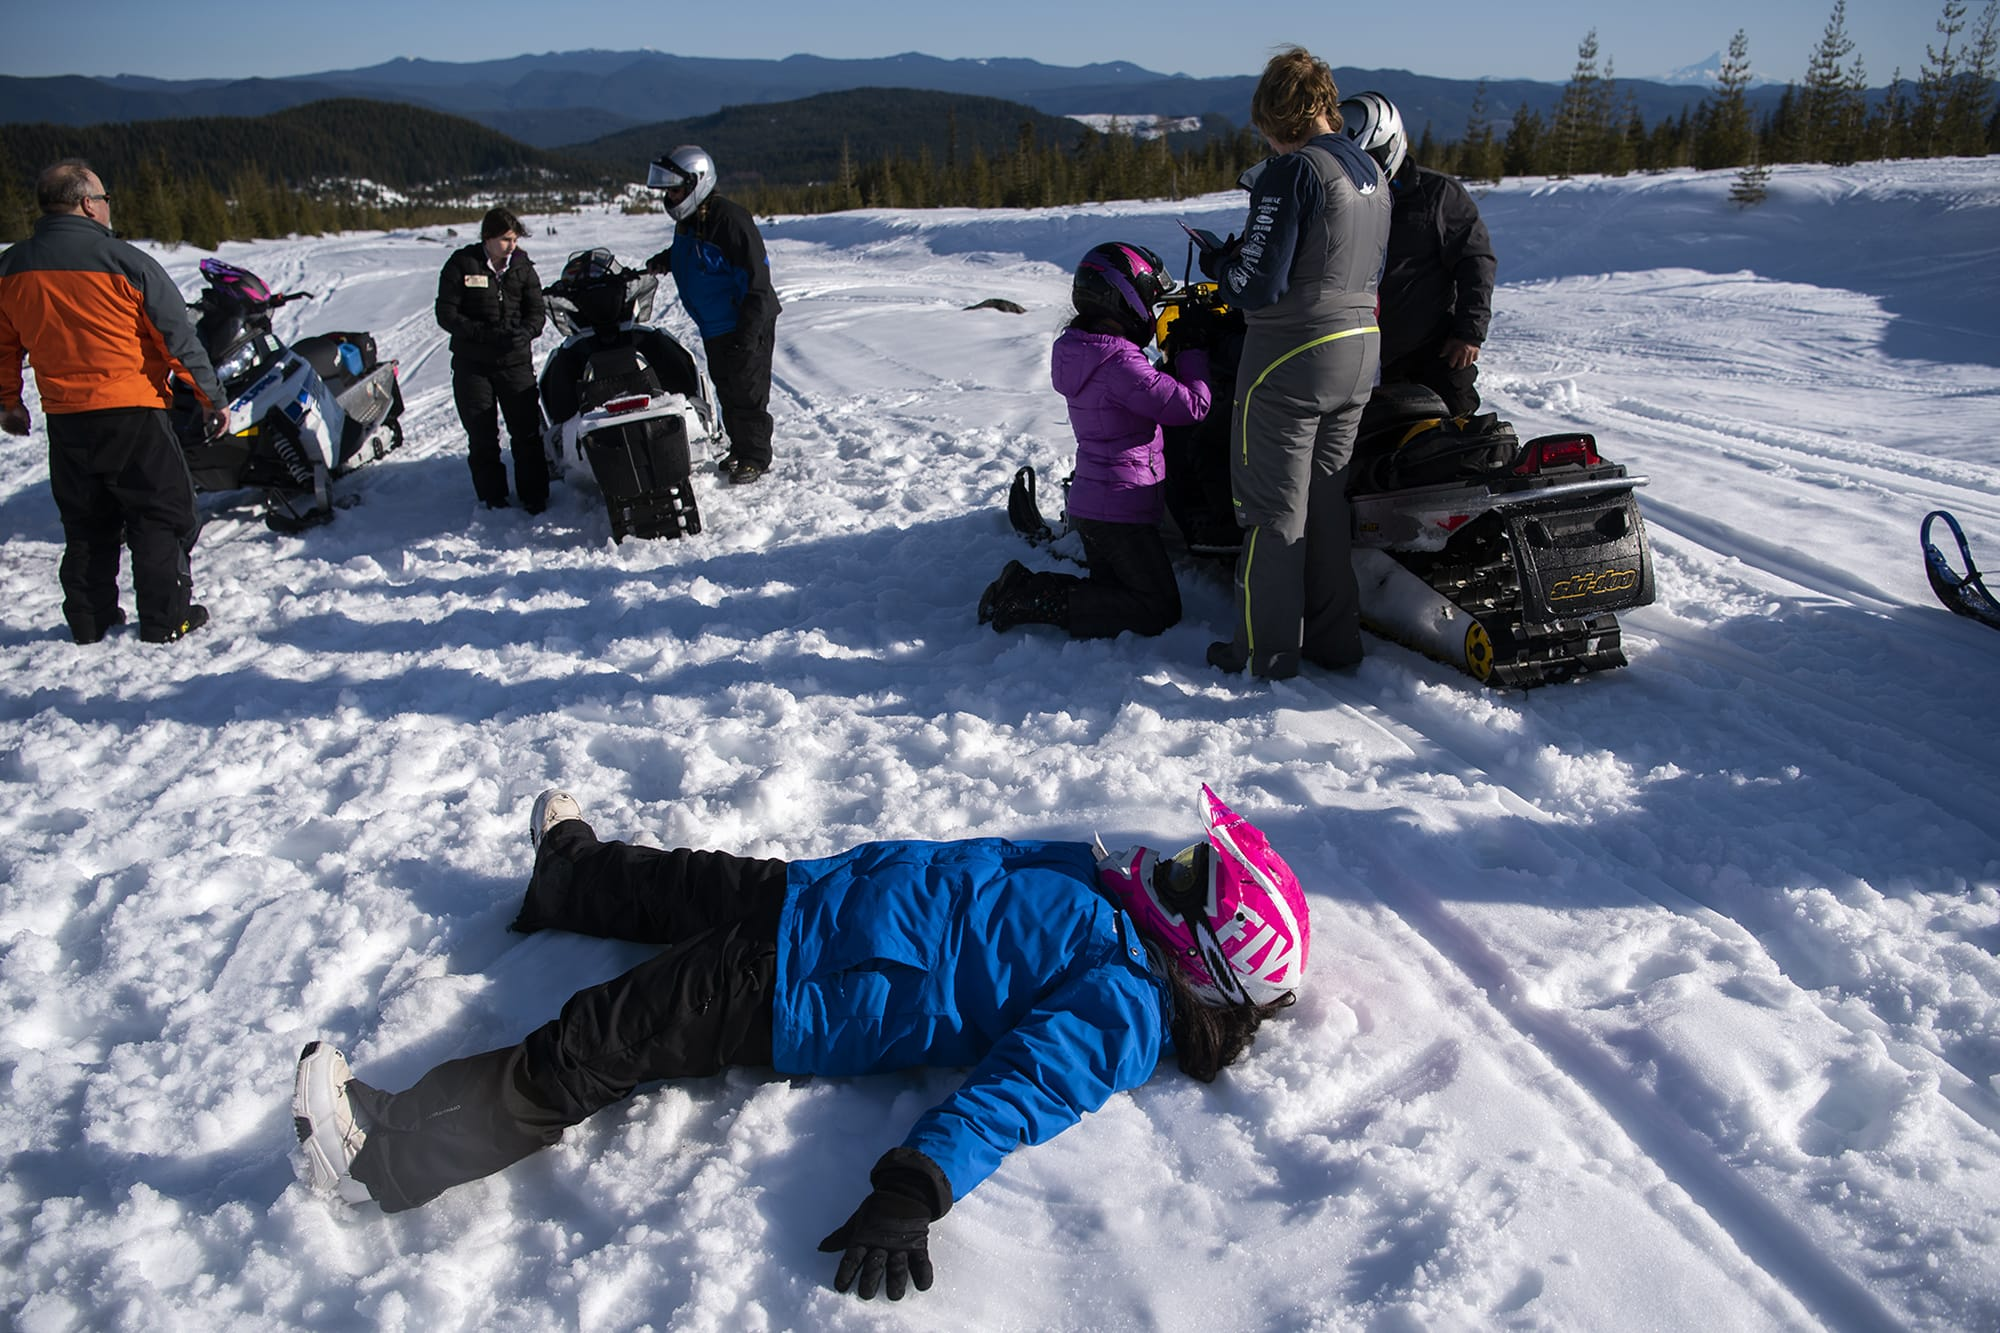 Washington State School for the Blind eighth-grader Angie Rodriguez makes a snow angel as the group takes a break from snowmobiling at Marble Mountain Sno-Park near Mount Saint Helens on Feb. 27, 2020. (Alisha Jucevic/The Columbian)